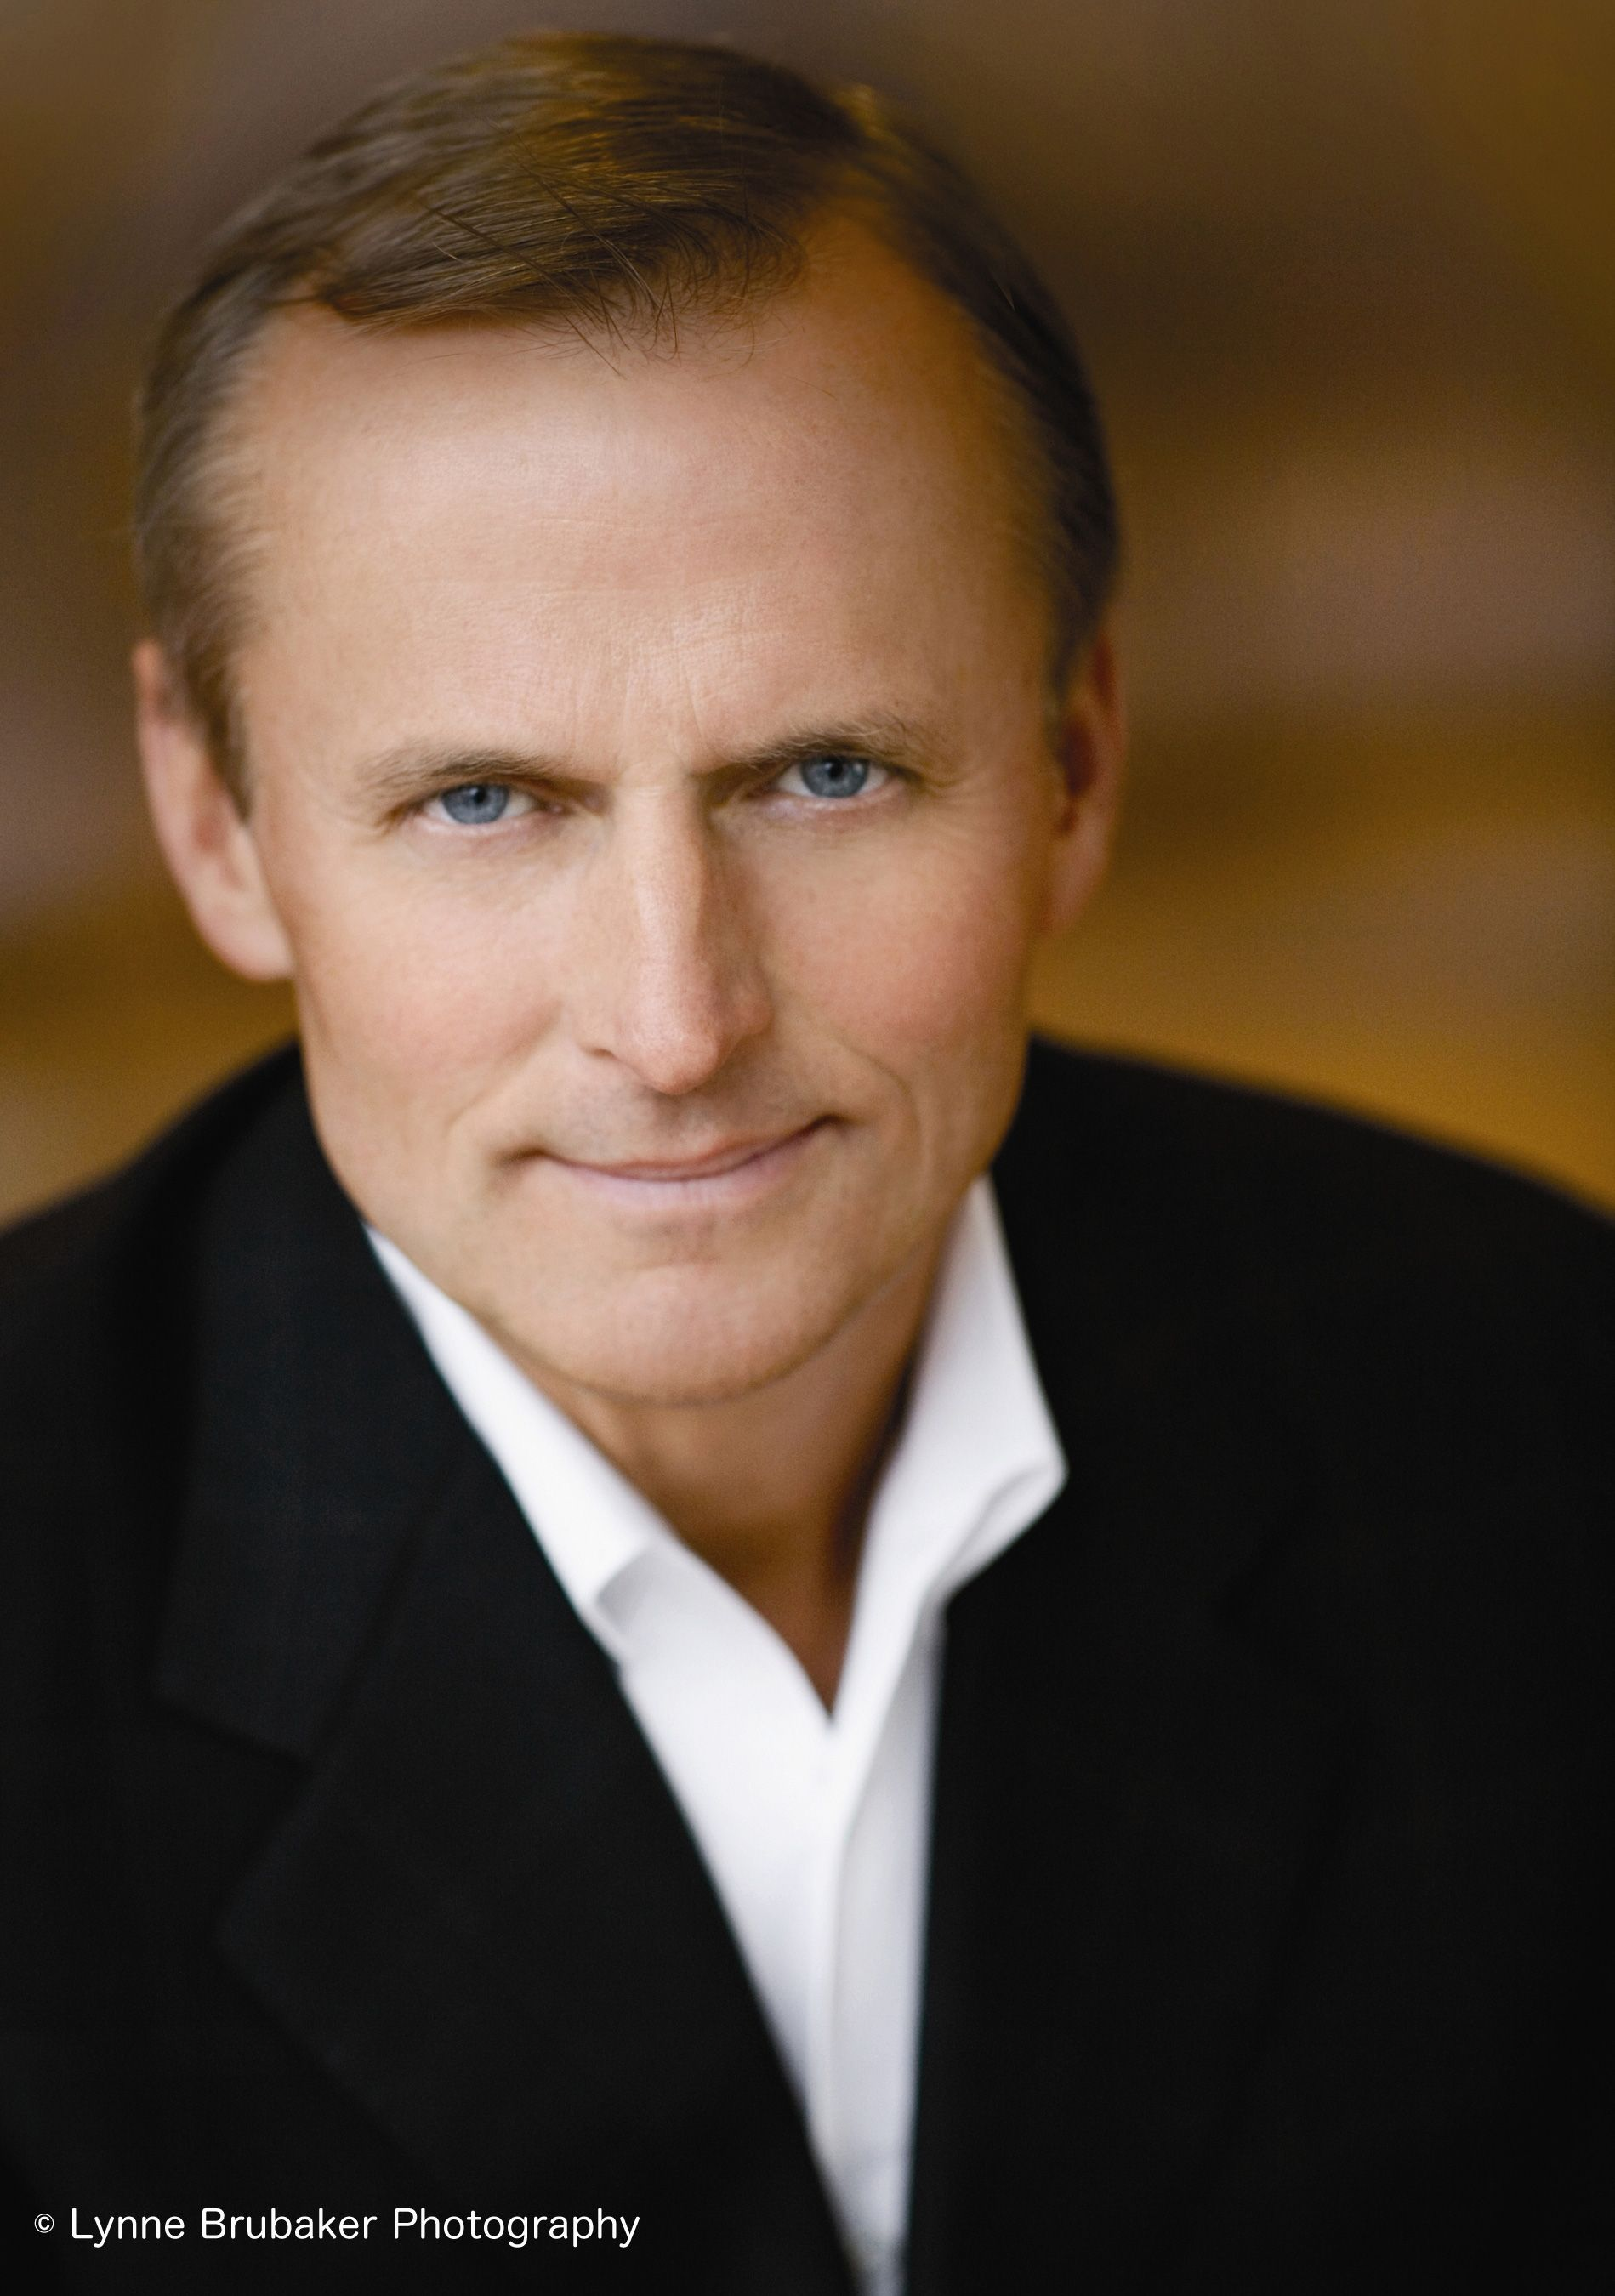 John Grisham Mega Successful Author With More Than 30 Novels To His